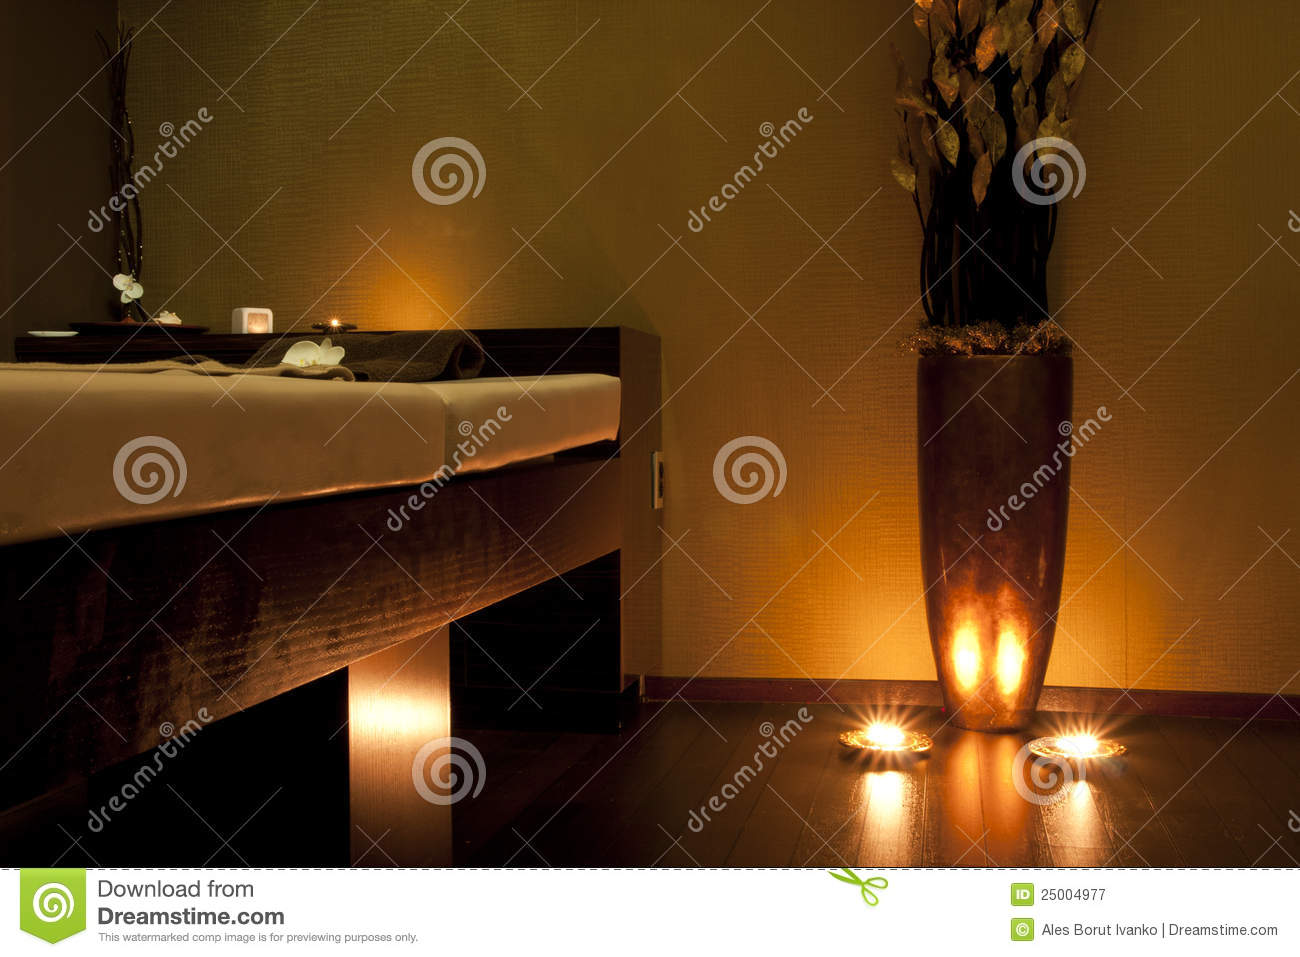 Spa Massage Room In Gold Stock Image Image Of Architect 25004977